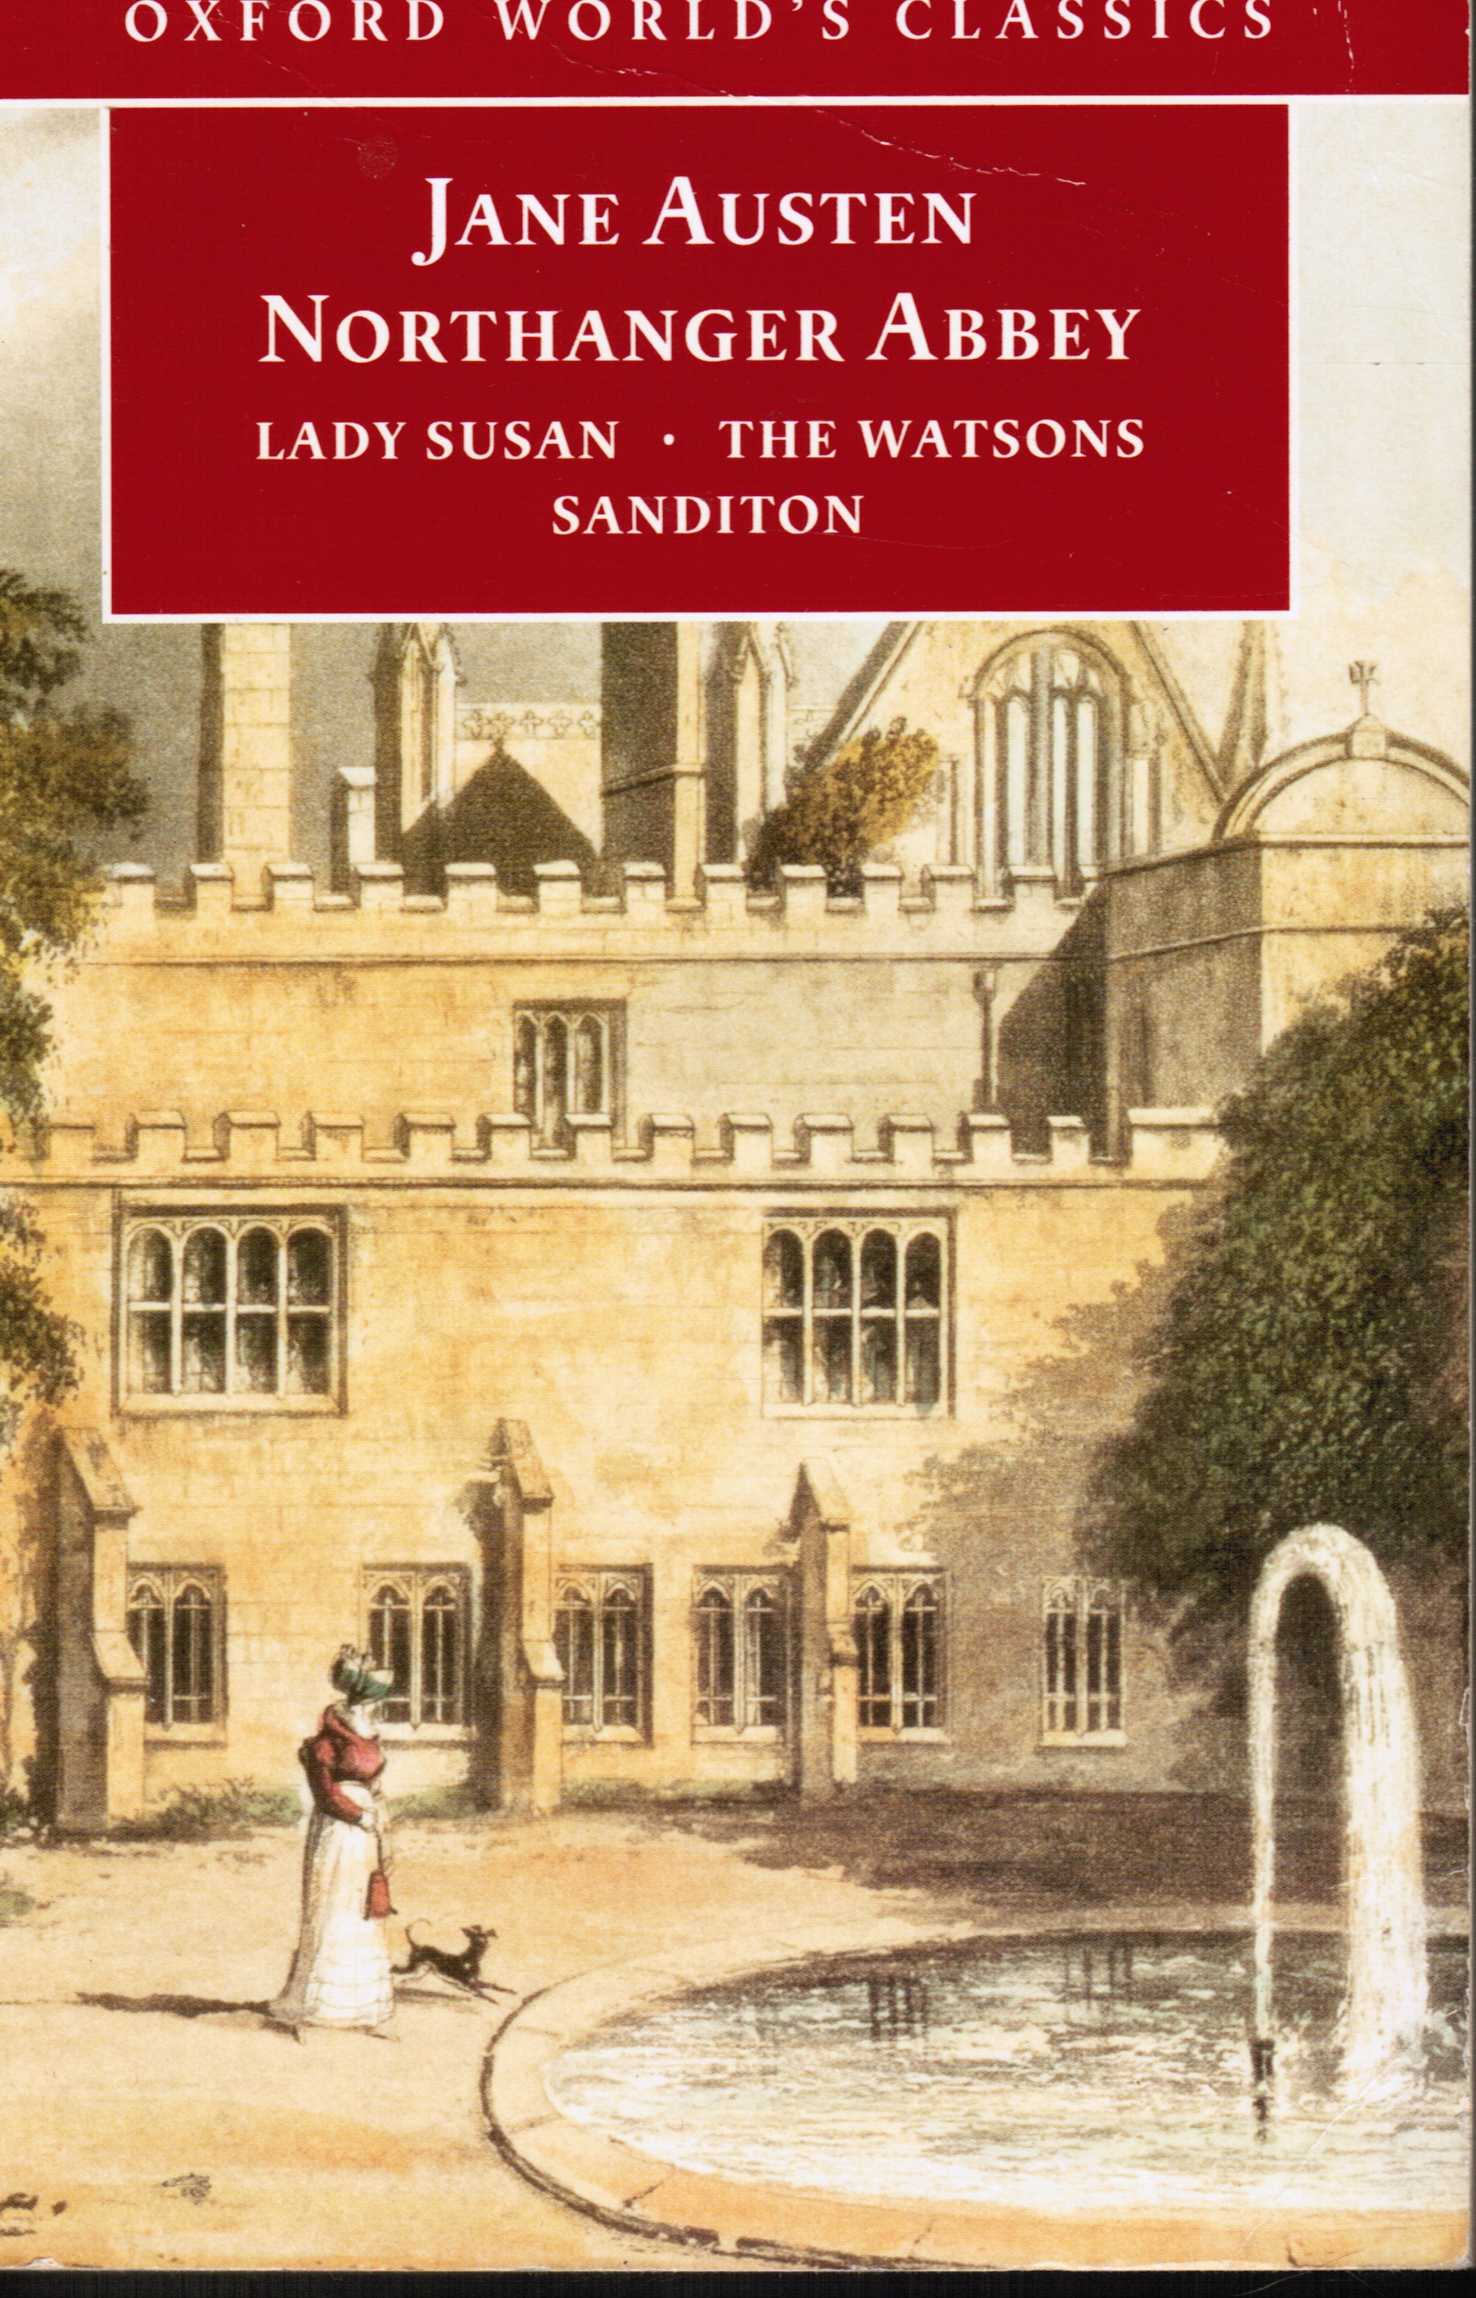 Image for Northanger Abbey: Lady Susan, the Watsons, Sanditon